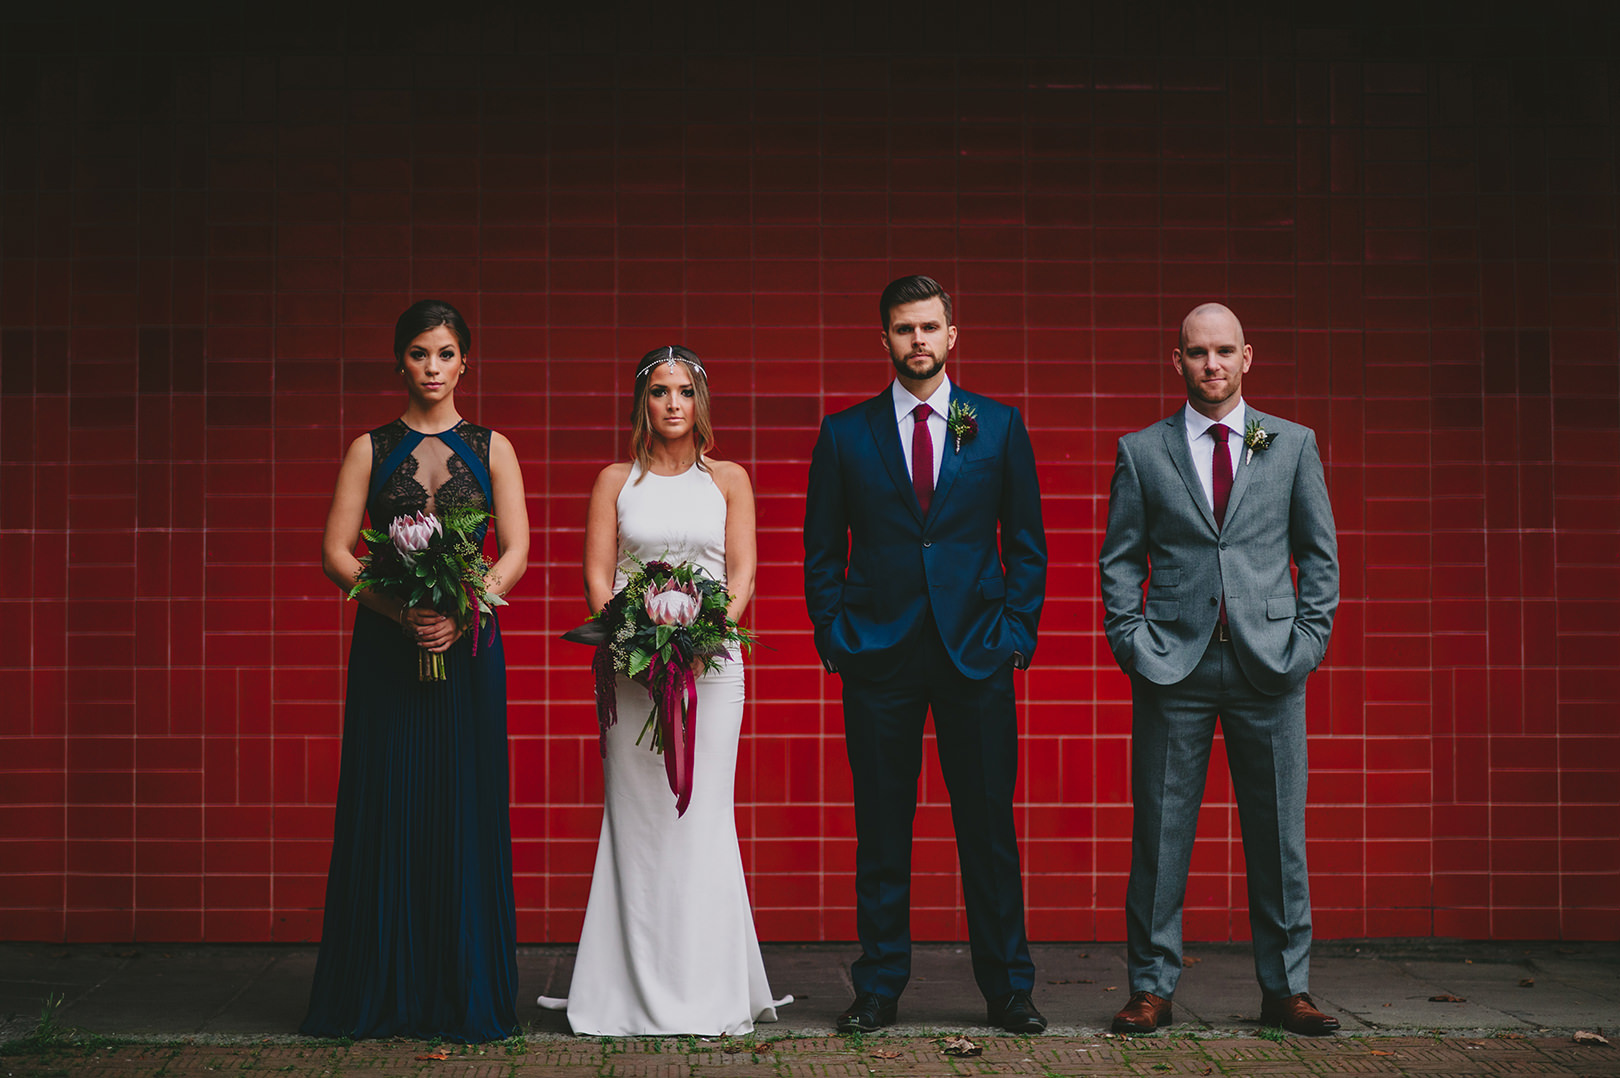 edgy Bohemian city wedding vancouver